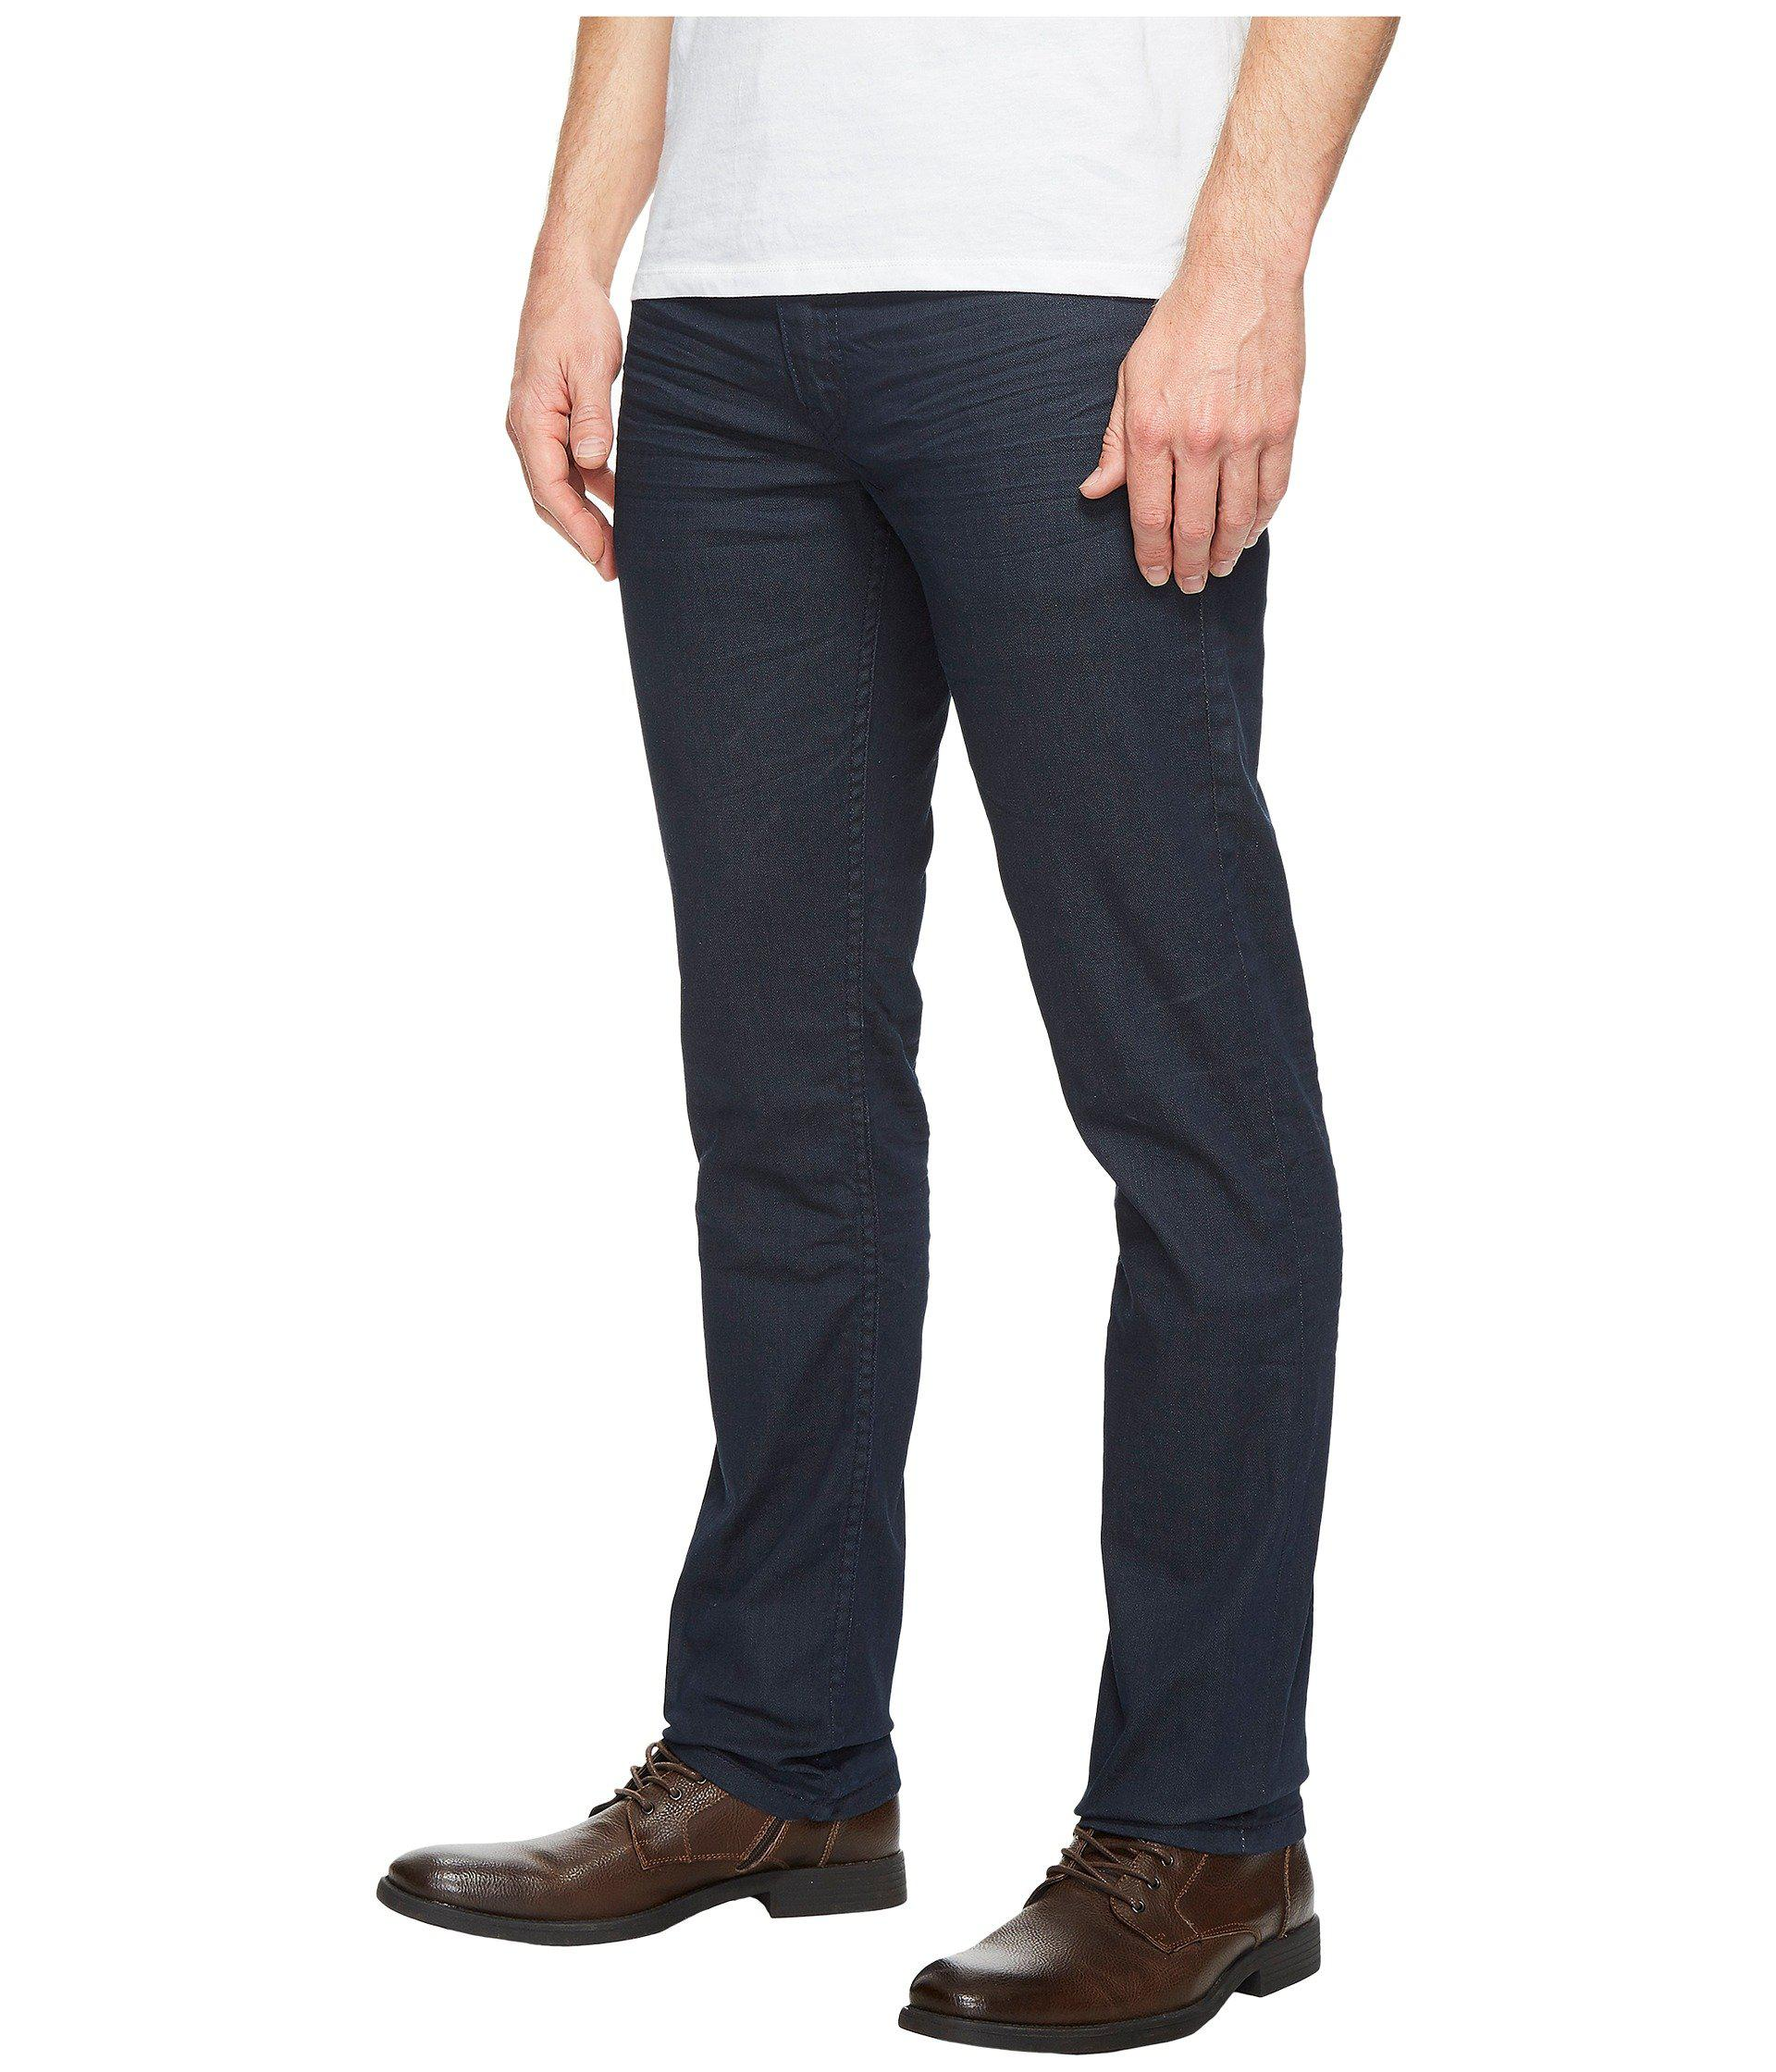 c8e7831ed7c Lyst - Levi's Levi's(r) Mens 511tm Slim (black) Men's Jeans in Black for Men